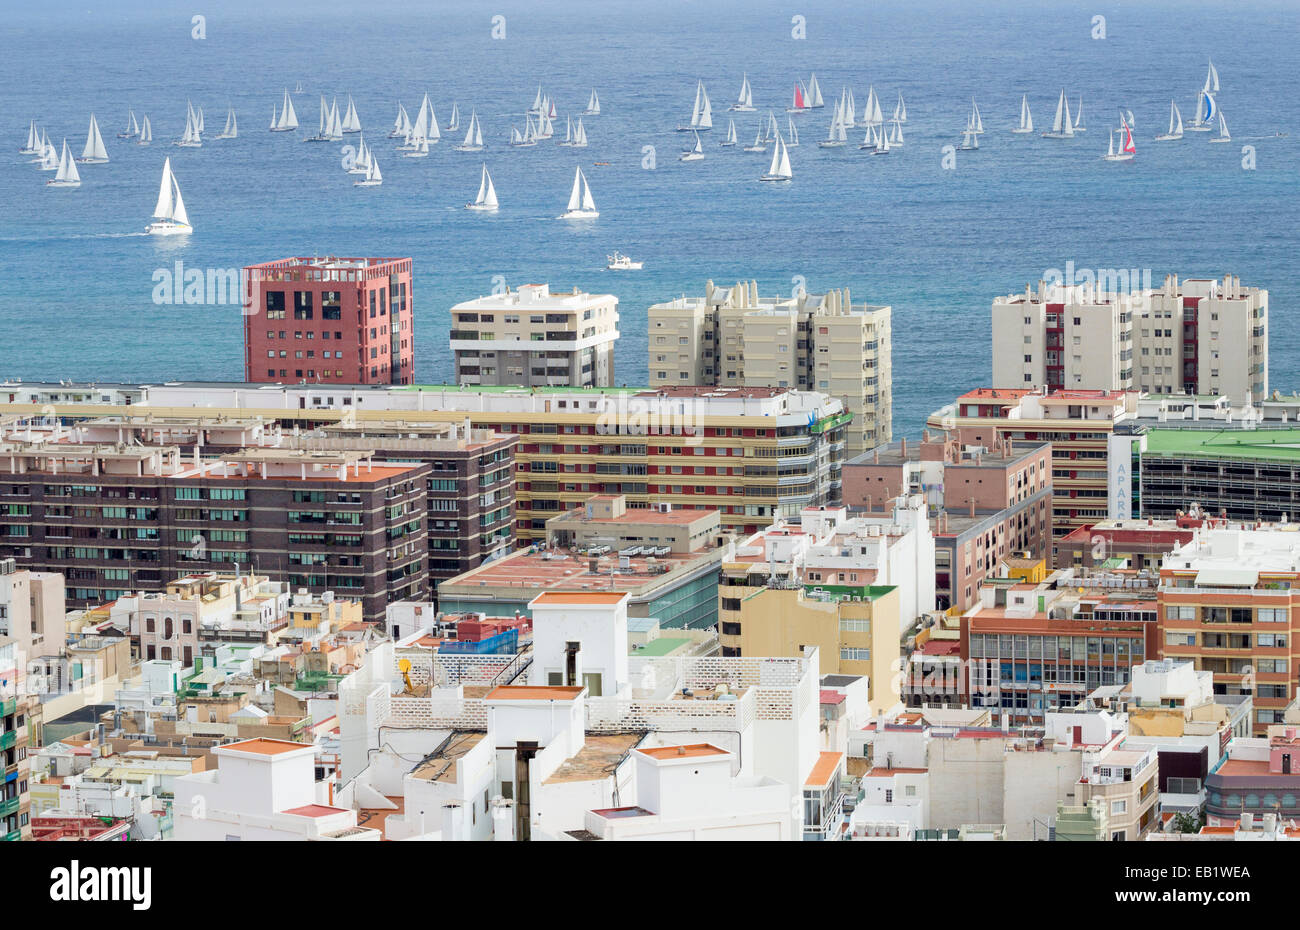 Gran Canaria, Canary Islands, Spain. 24th November, 2014. View from high city viewpoint in Las Palmas as yachts - Stock Image